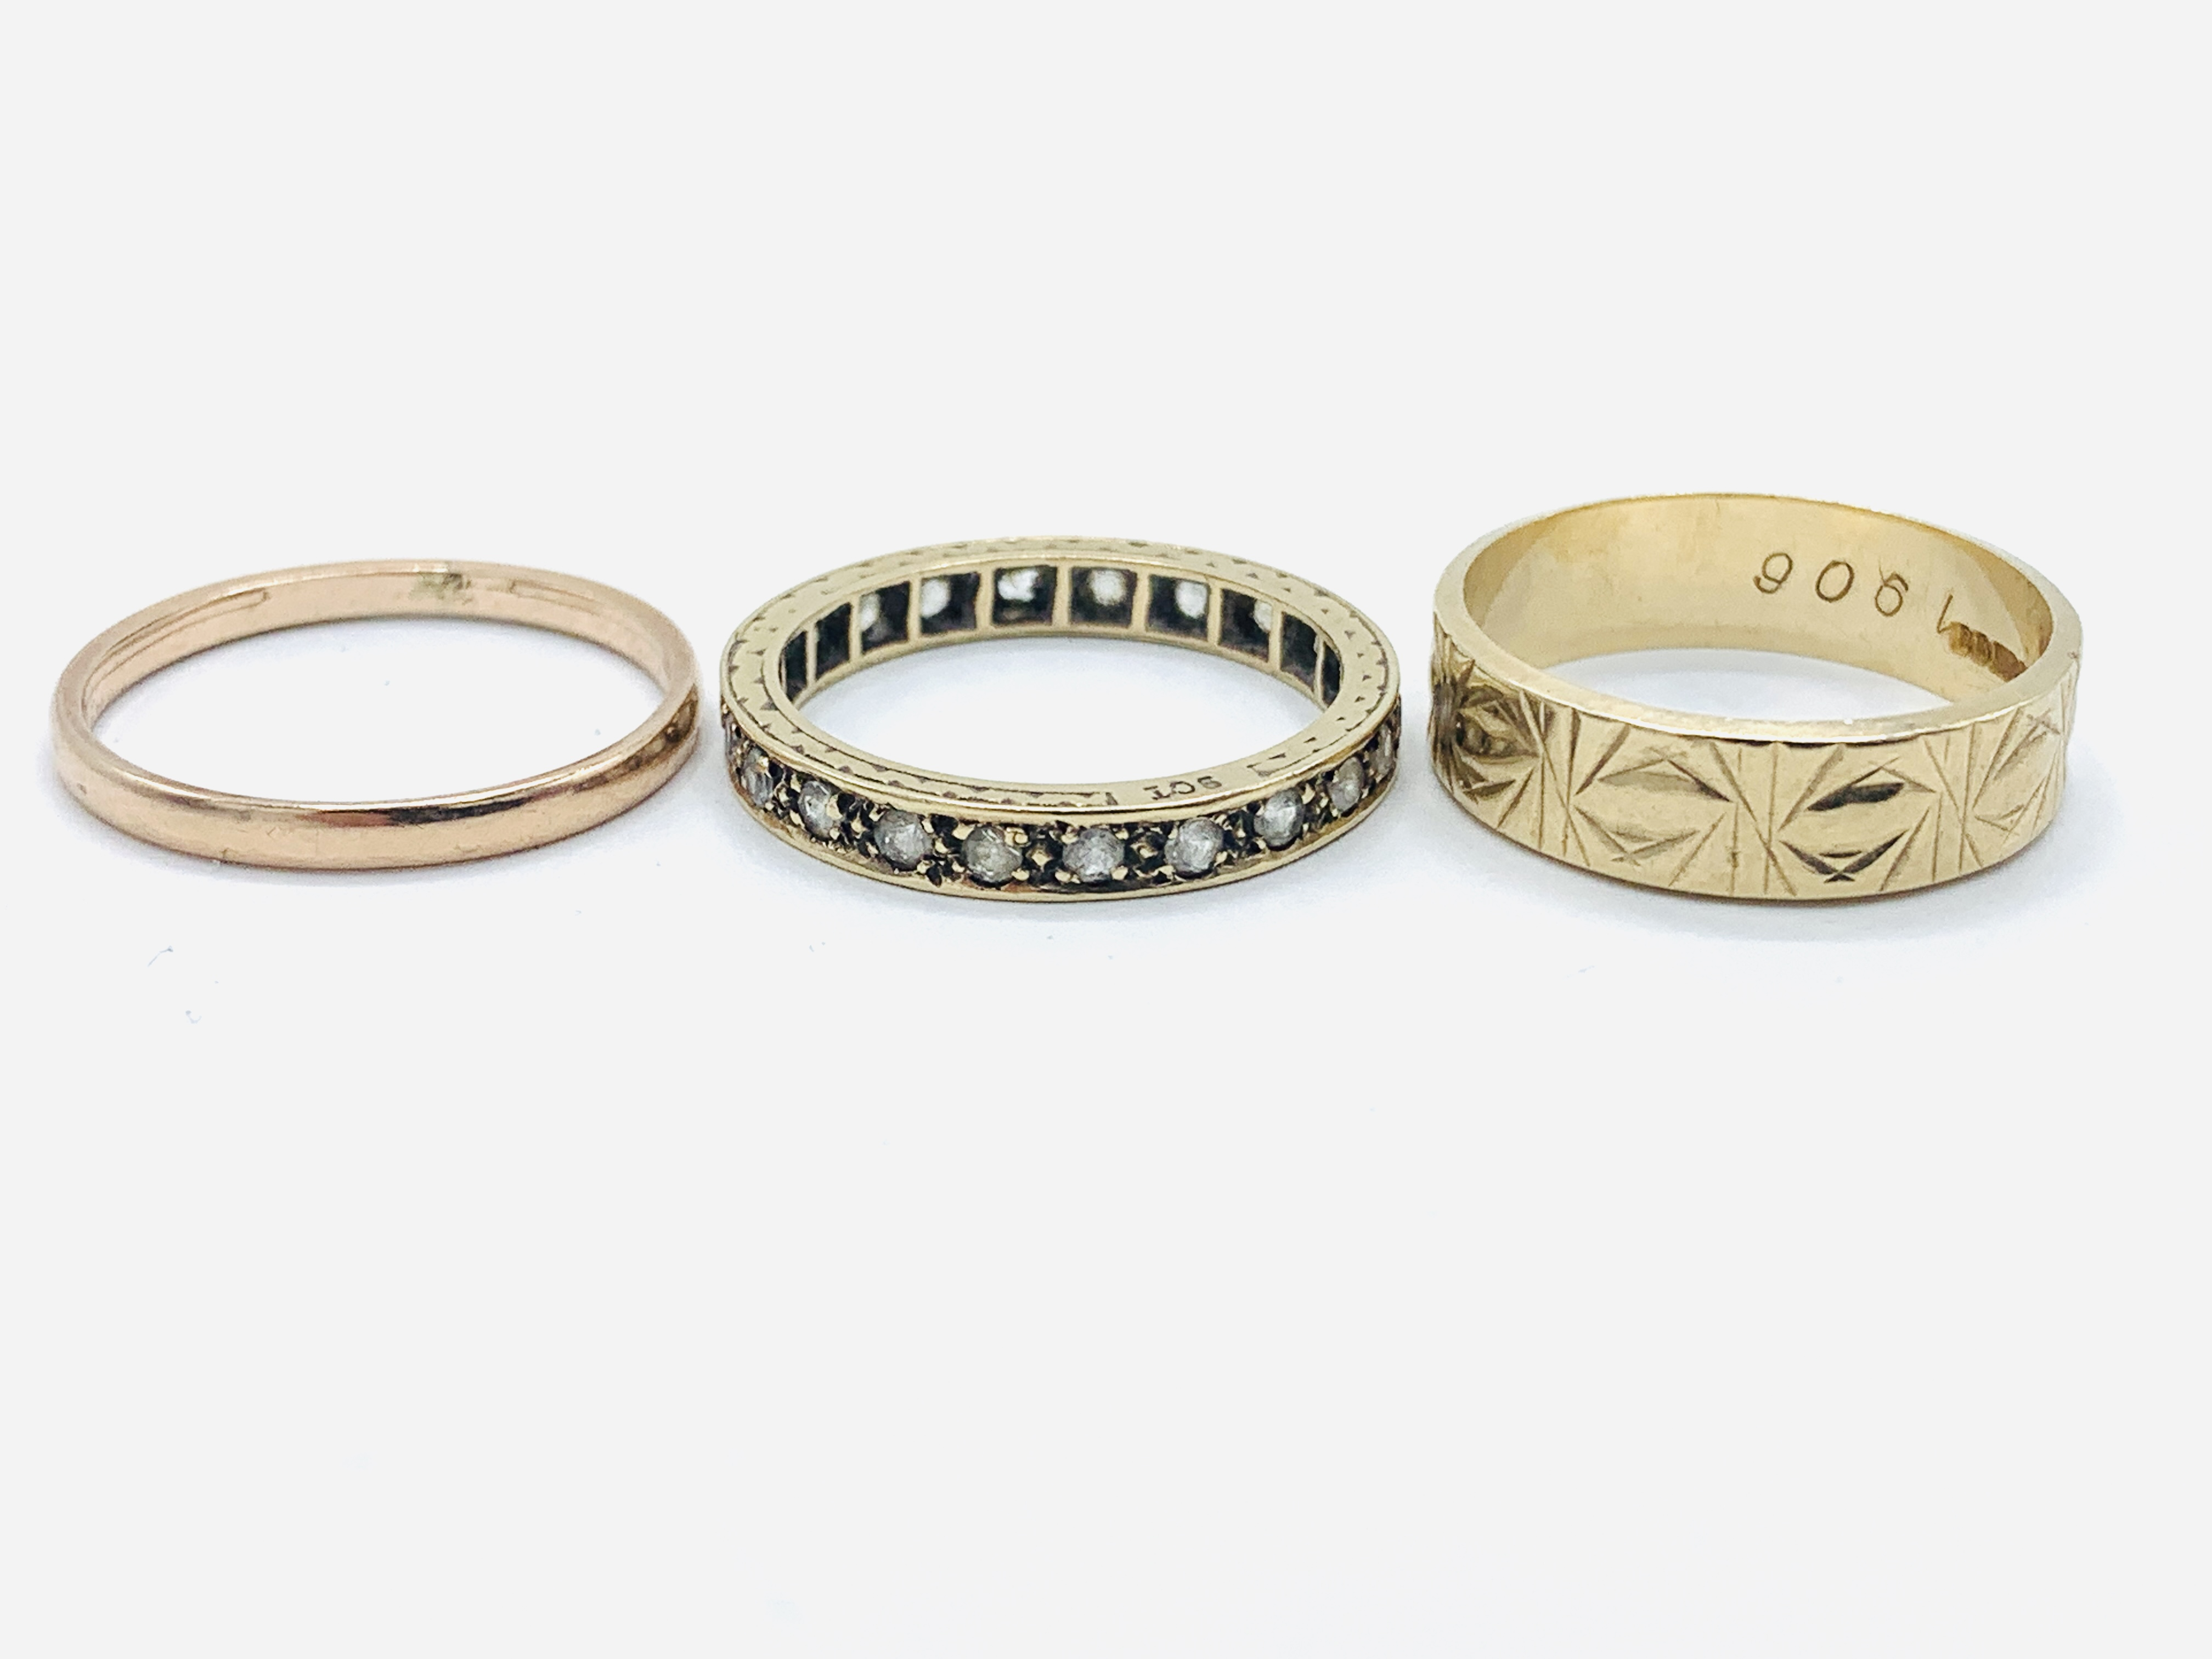 A 9ct gold band, a 9ct gold decorated band; and a 9ct gold and white stone eternity ring